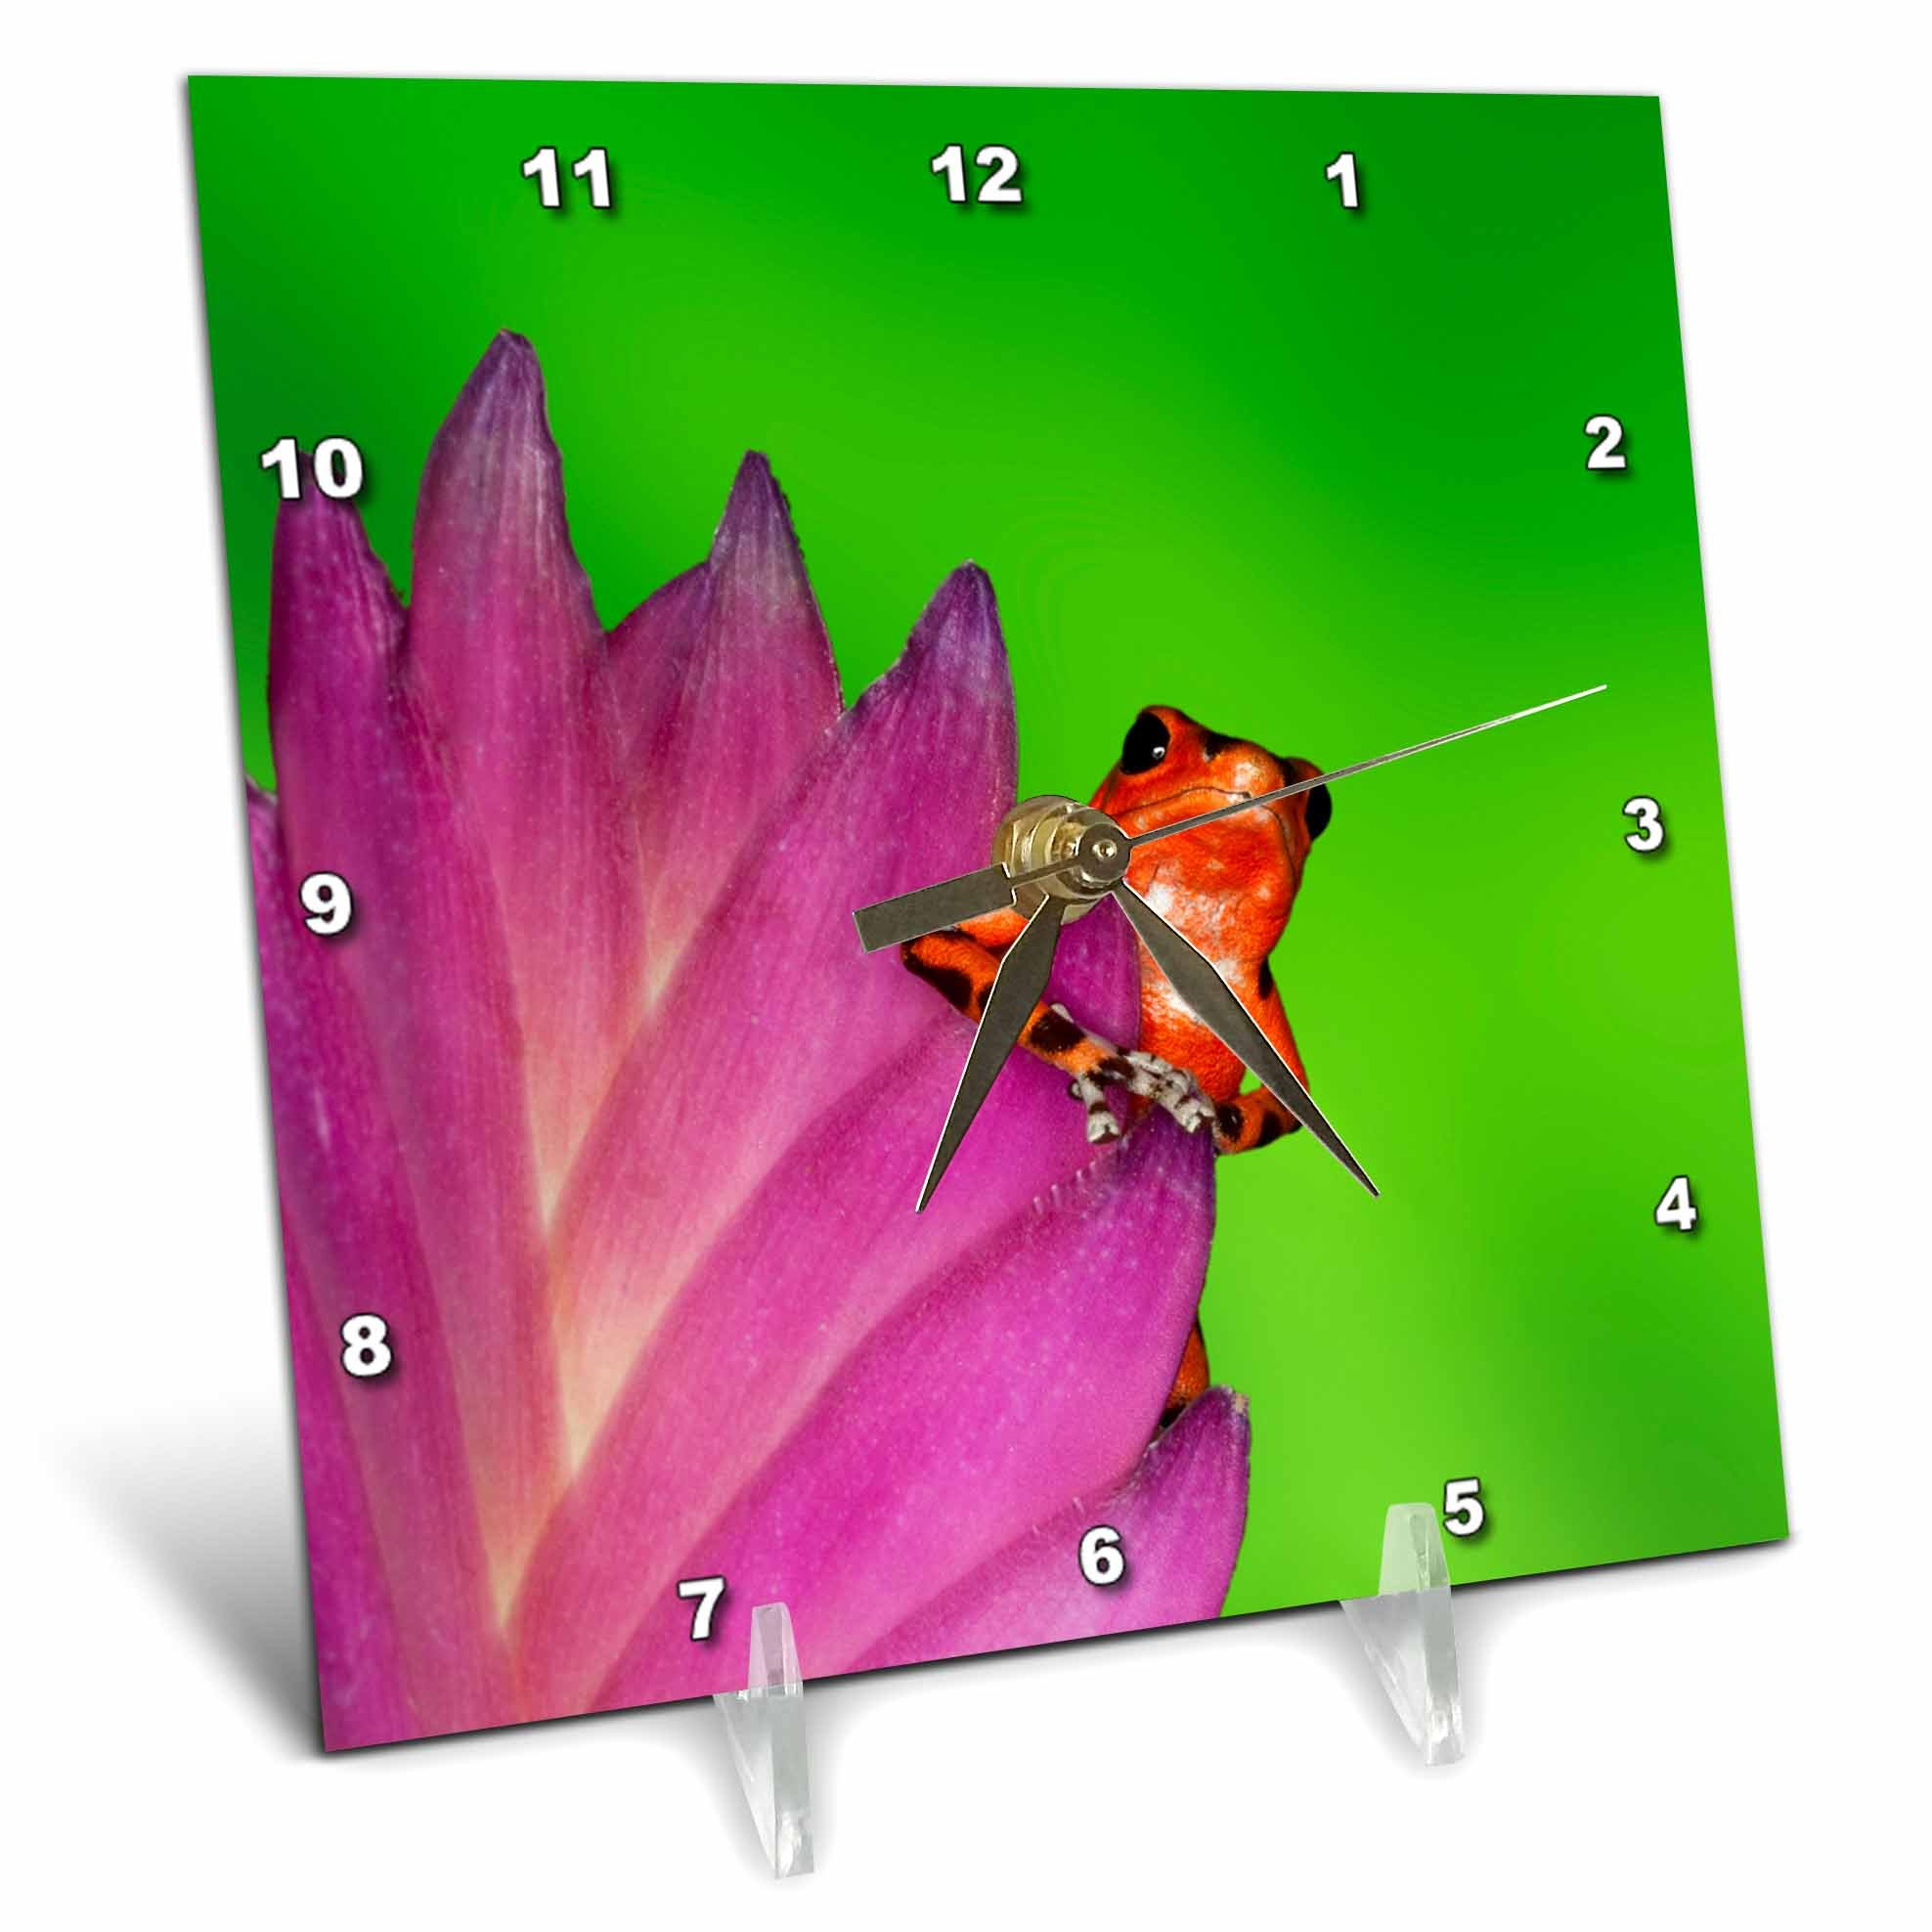 3dRose Danita Delimont - Frogs - South America, Panama. Strawberry poison dart frog on bromeliad. - 6x6 Desk Clock (dc_278317_1)